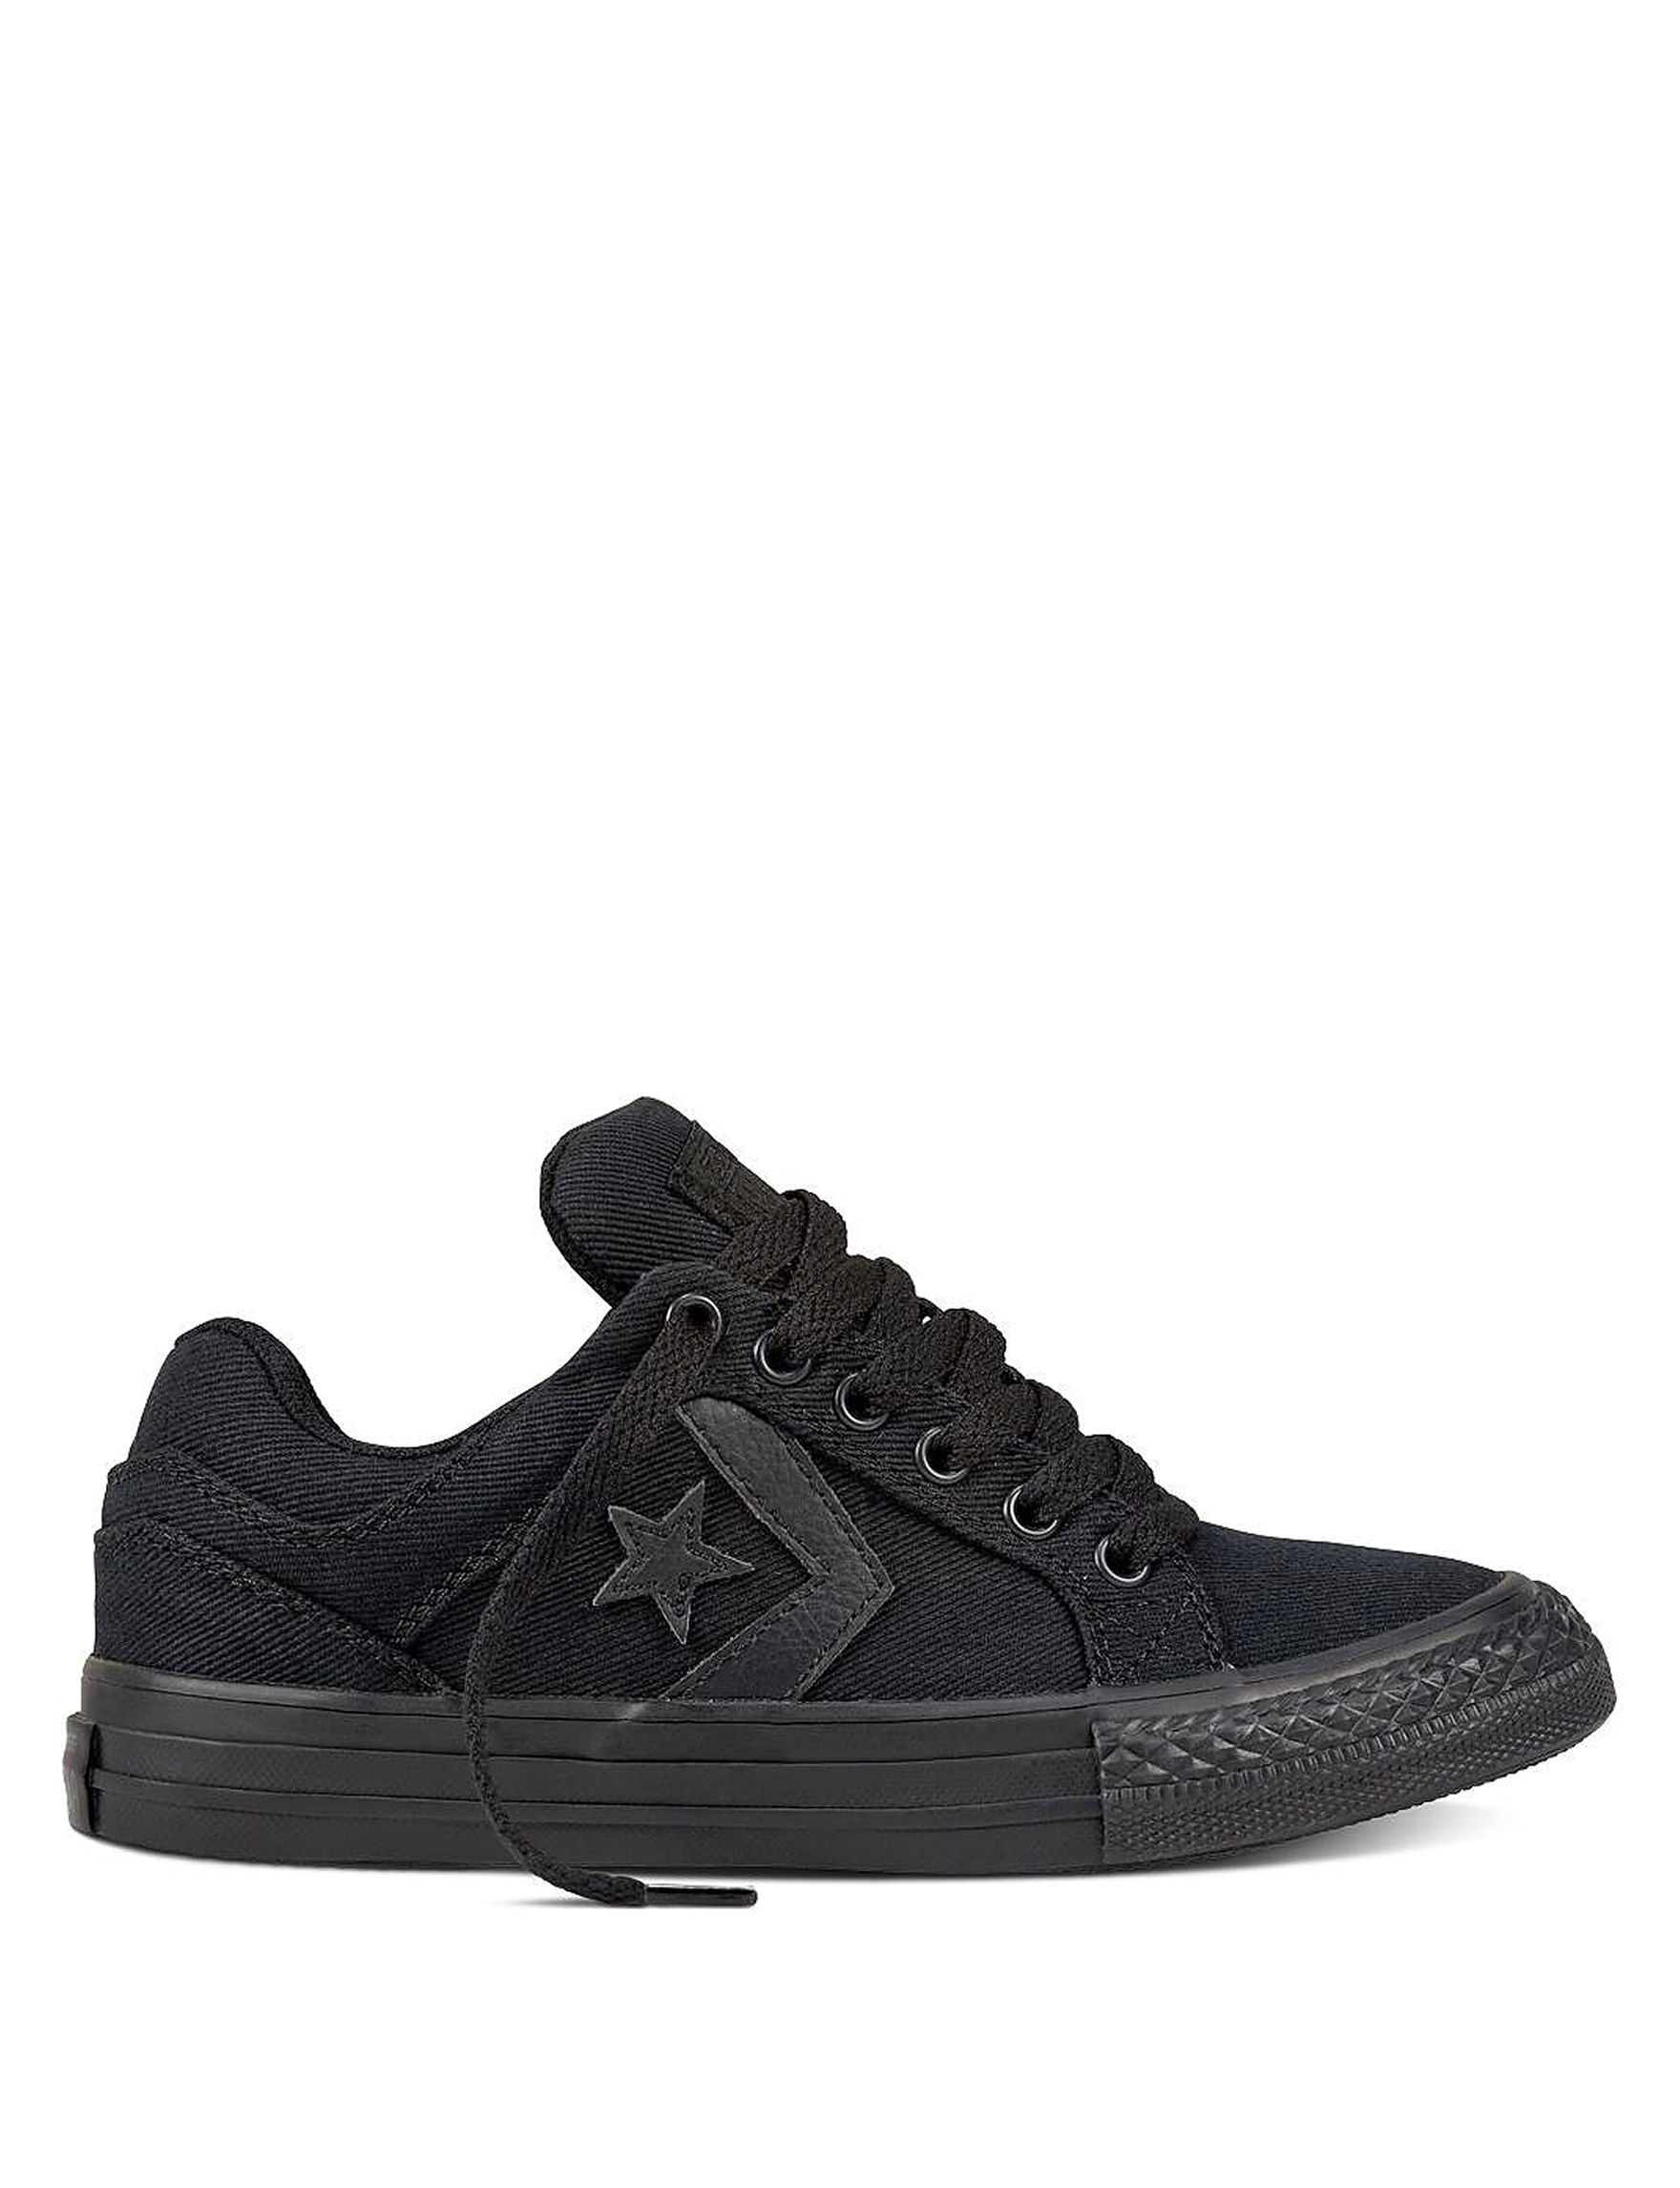 8eb2fb972760 Converse Cons El Distrito Lace-Up Shoes - Kids 11-3 - Rebate Available